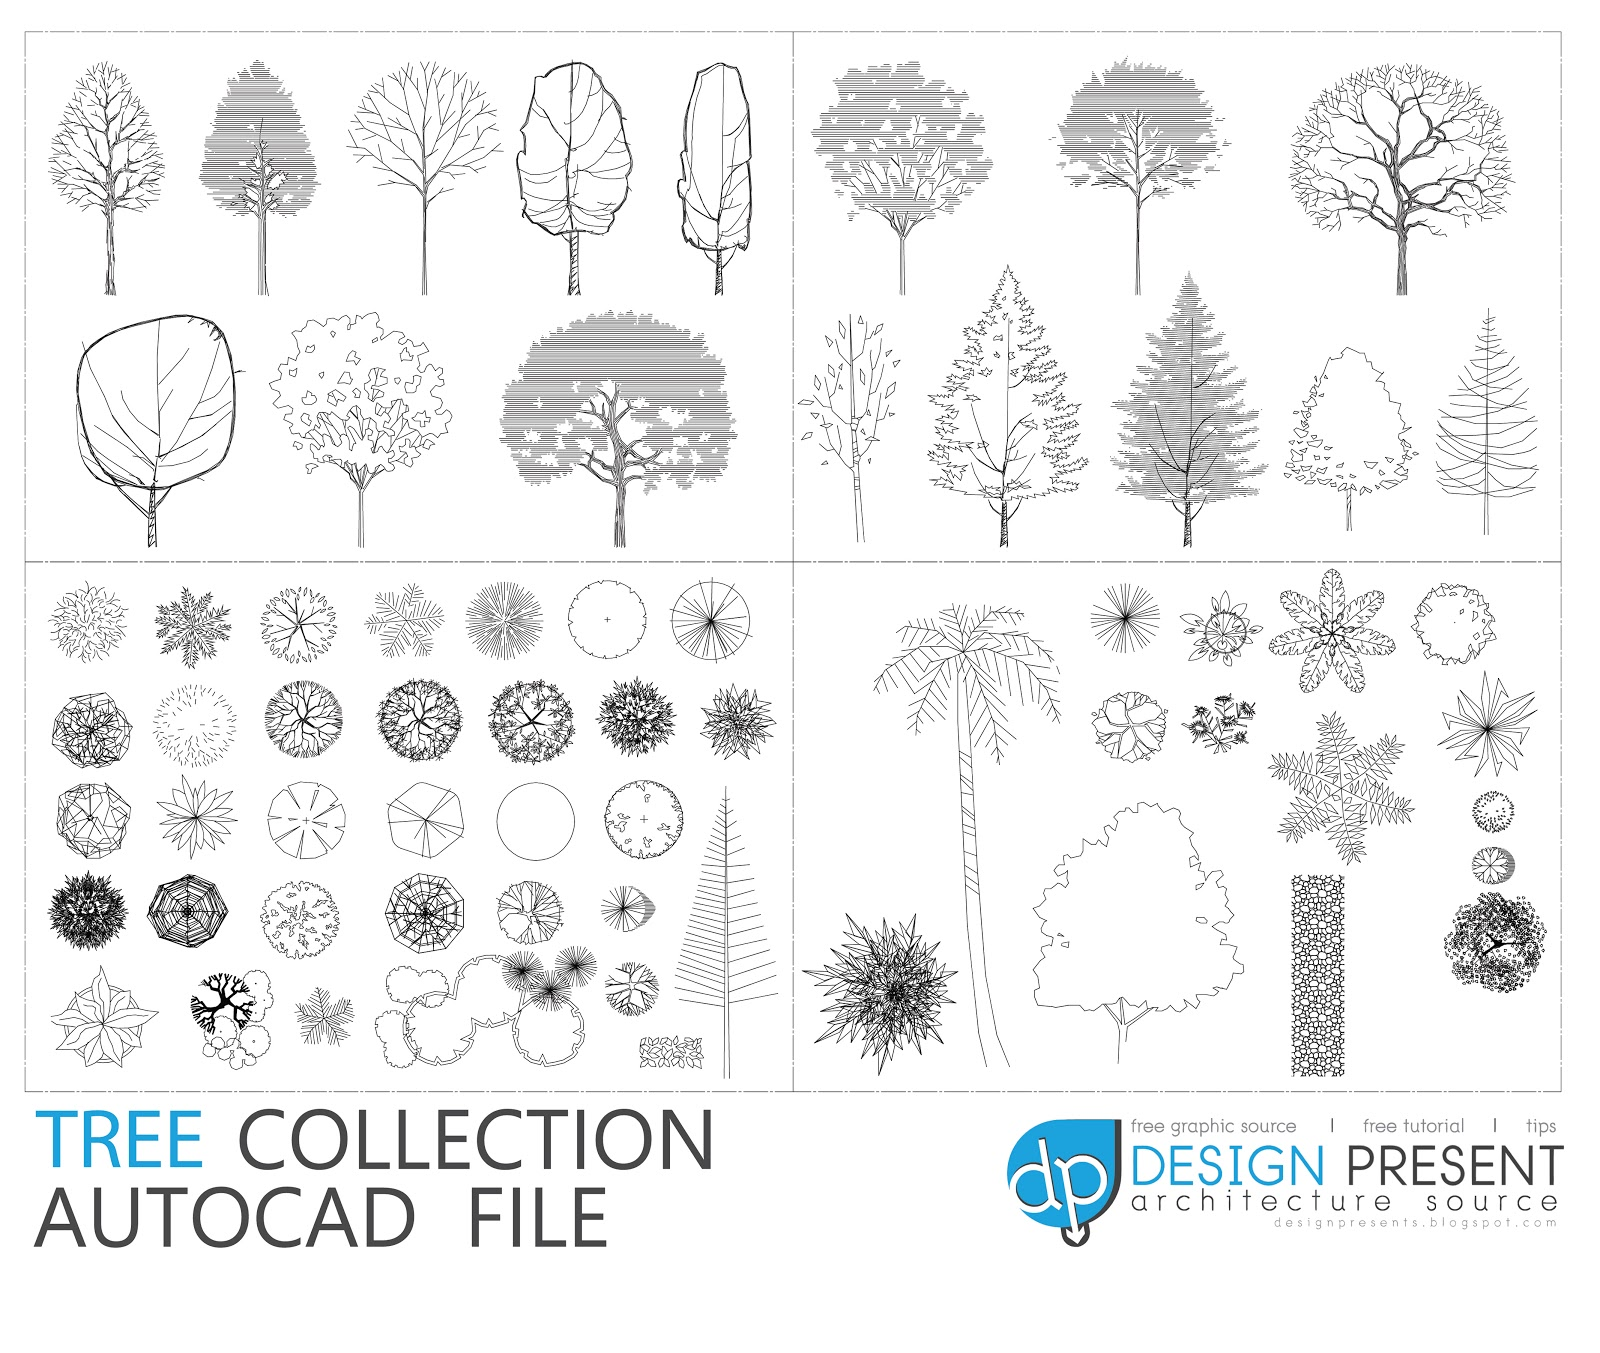 Free Cad Trees Plan View Sketch Coloring Page